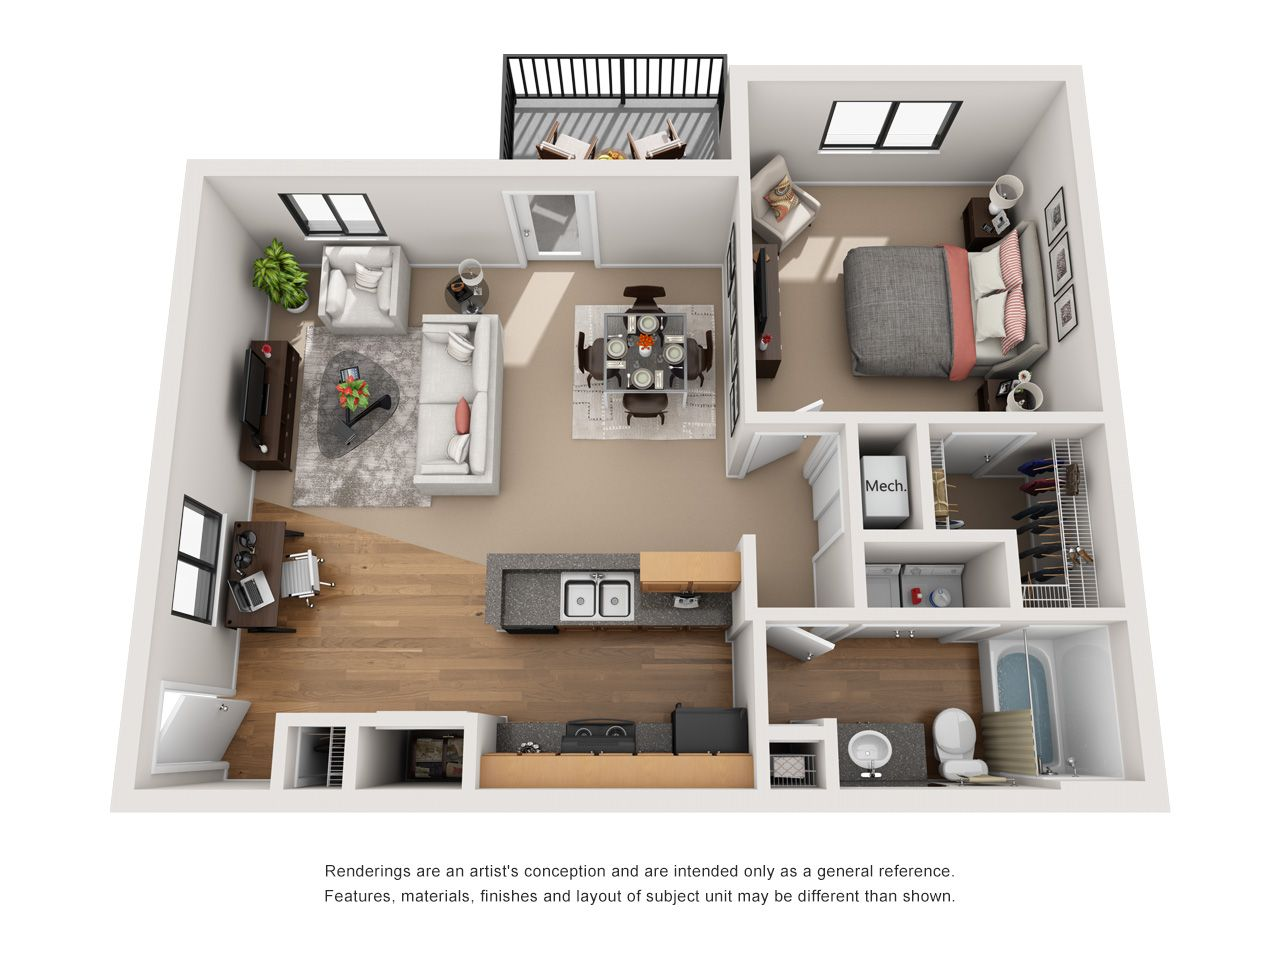 Pet Friendly Apartments In Indianapolis Indiana For Rent Indianapolis Indiana Apartm One Bedroom House Plans 3 Bedroom Home Floor Plans Sims House Design